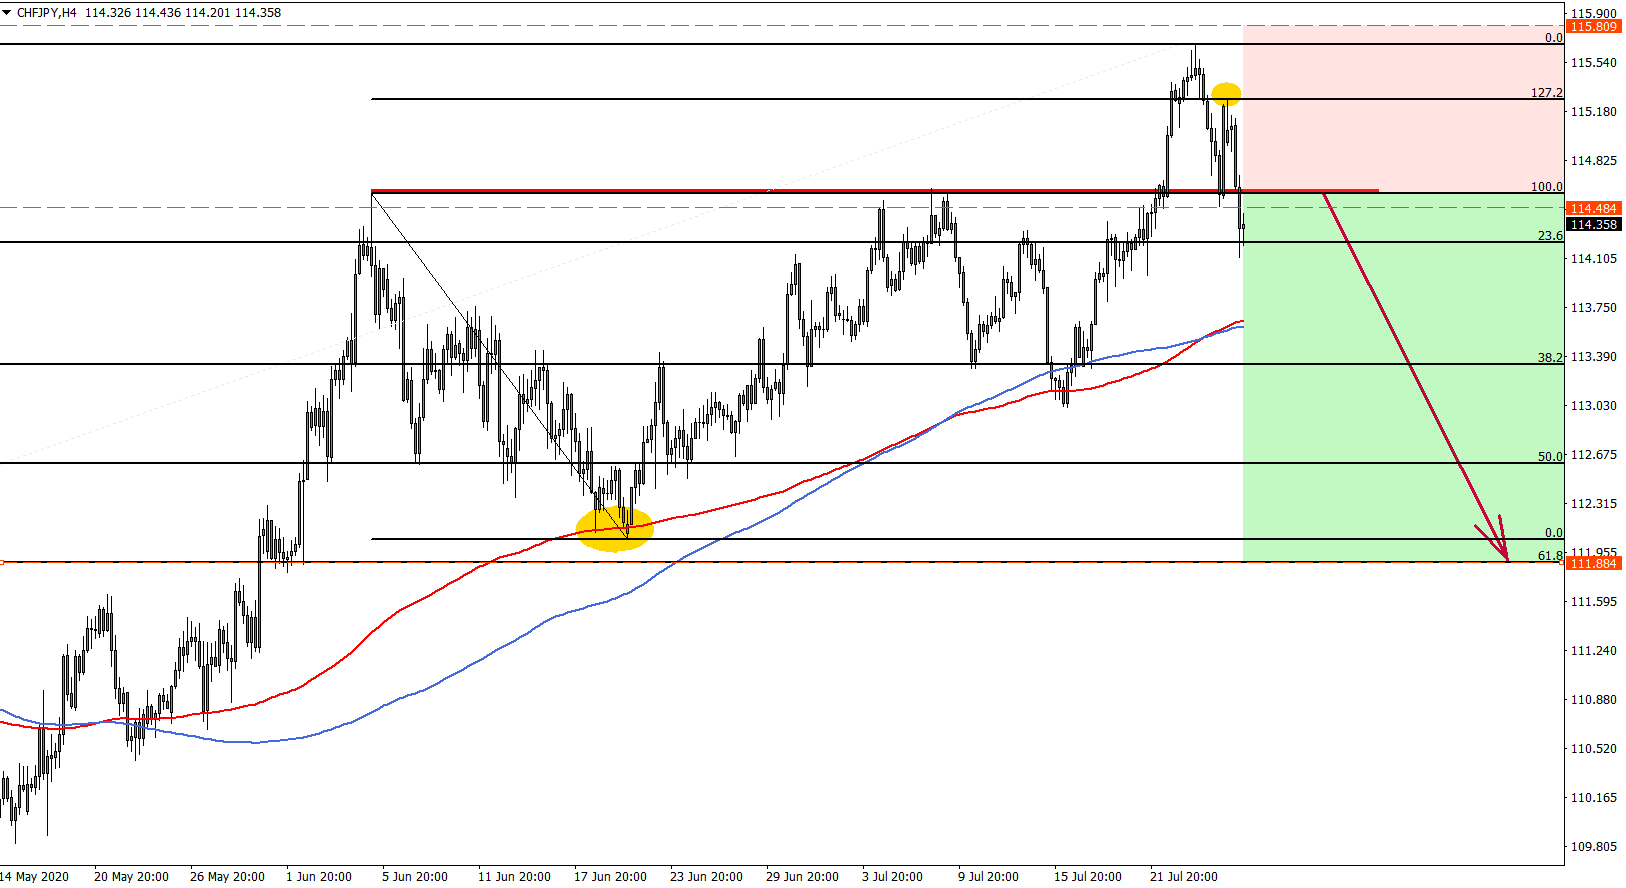 CHFJPY 4 hour chart July 27th 2020